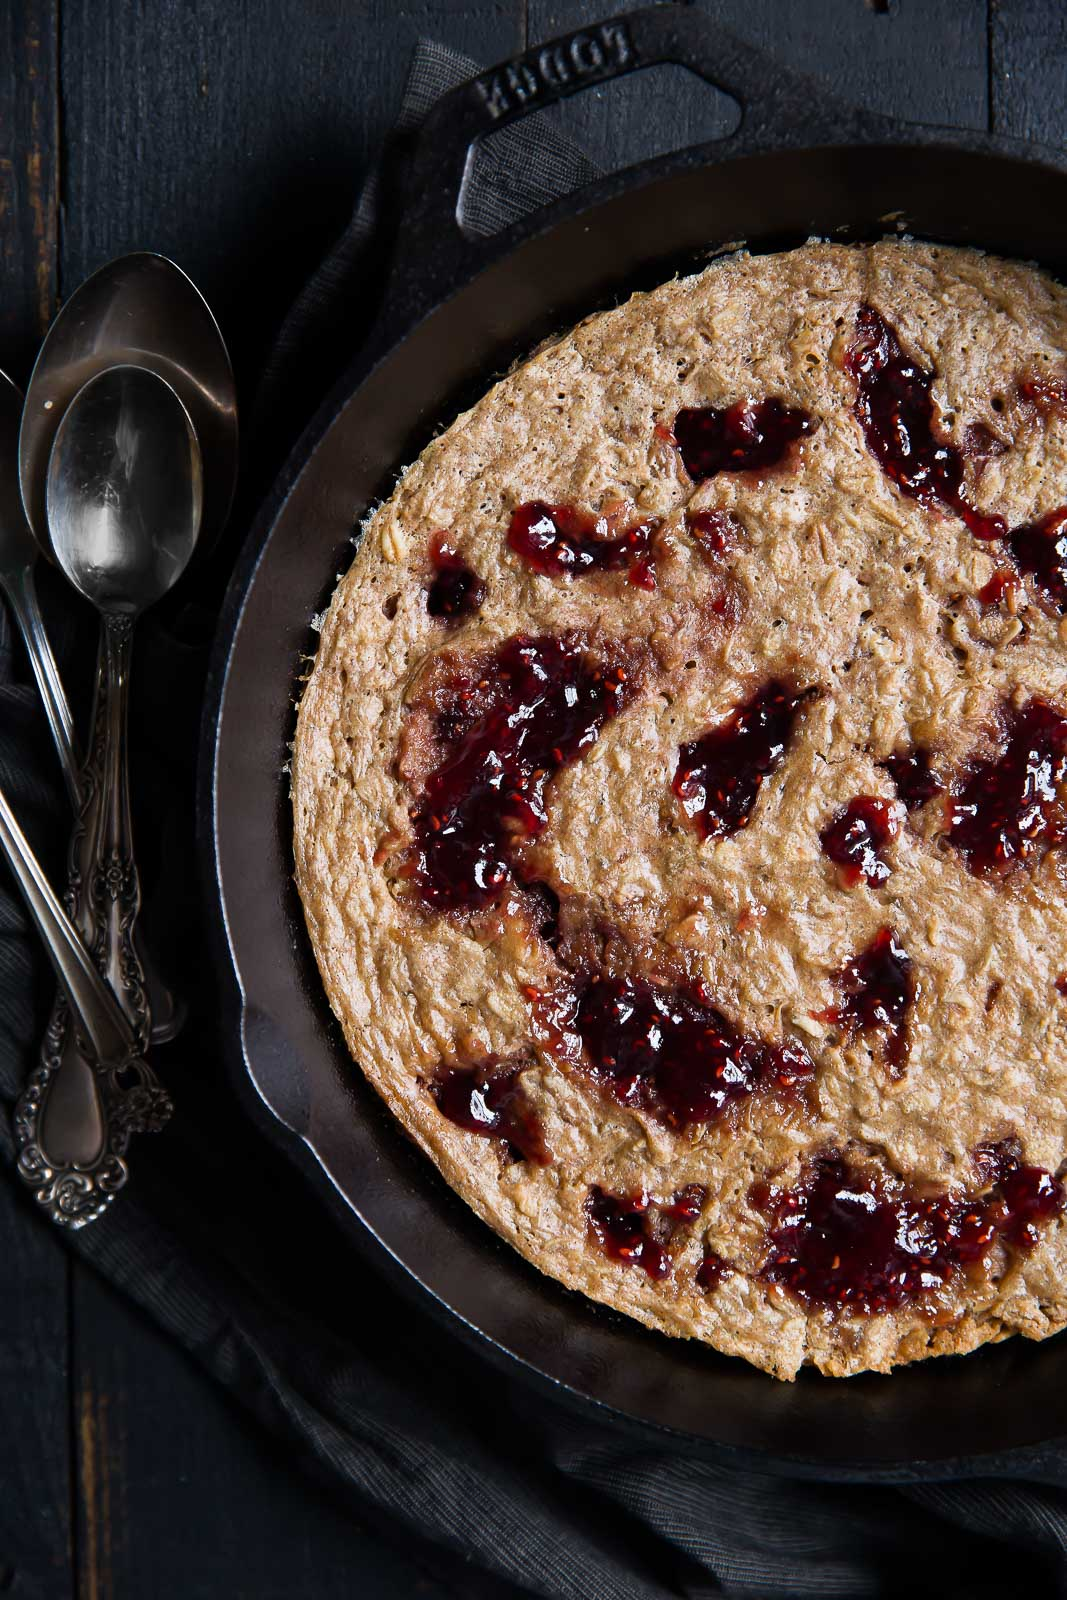 peanut butter and jelly baked oatmeal in a skillet